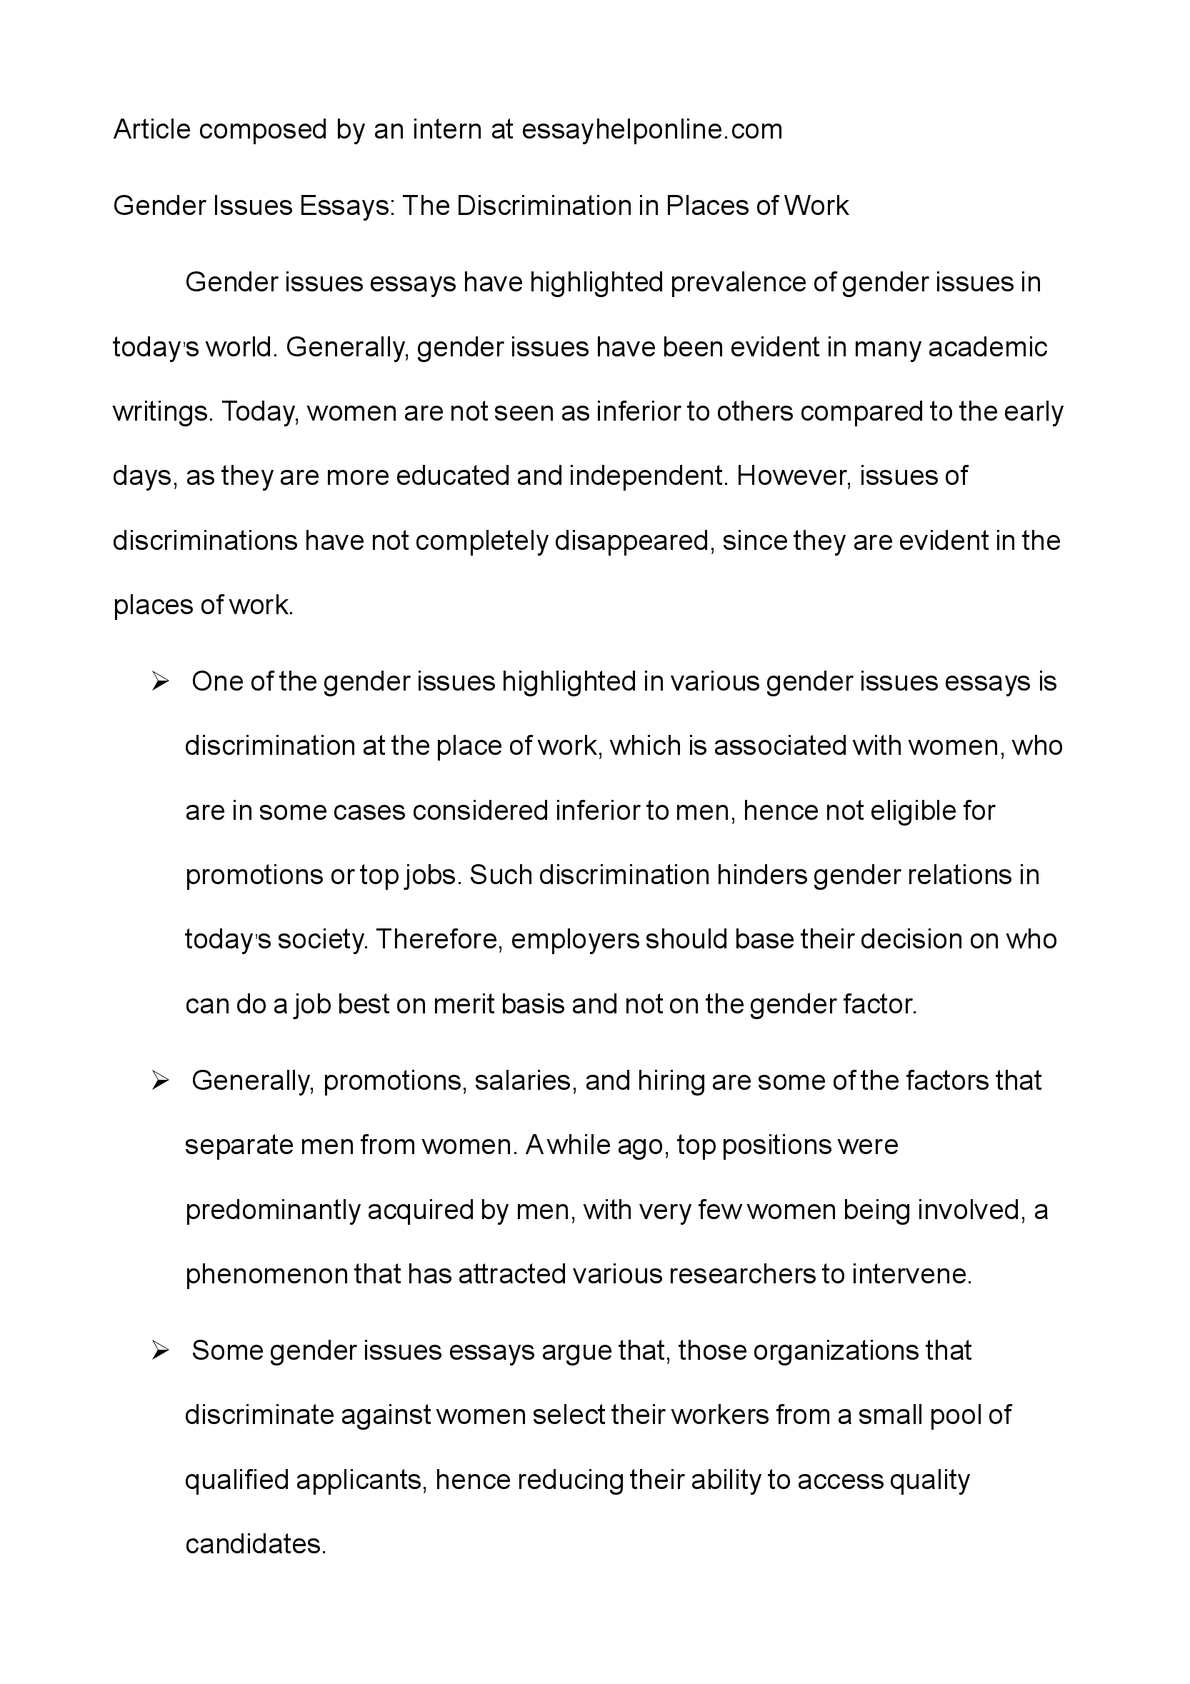 calamo   gender issues essays the discrimination in places of work